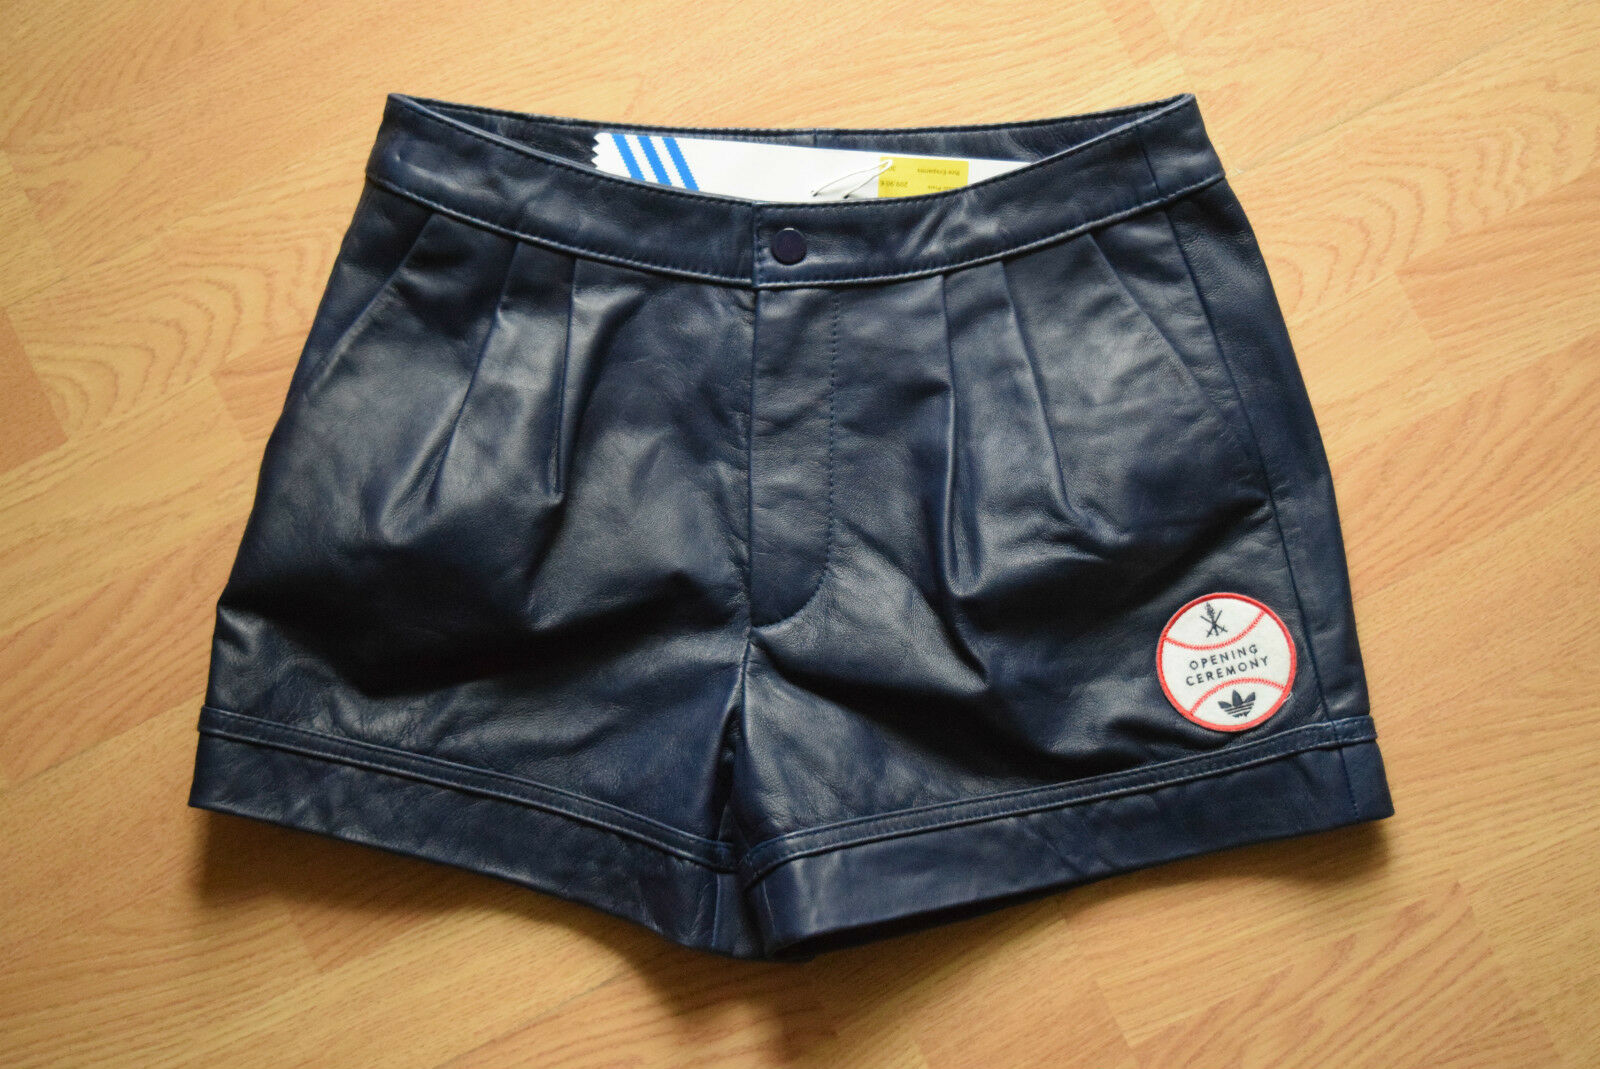 Adidas Baseball Leather Short Hot Pants S S S x Opening Ceremony jeRemY sCoTT F83485 | Die Farbe ist sehr auffällig  | Überlegen  | Outlet Online Store  c76c26